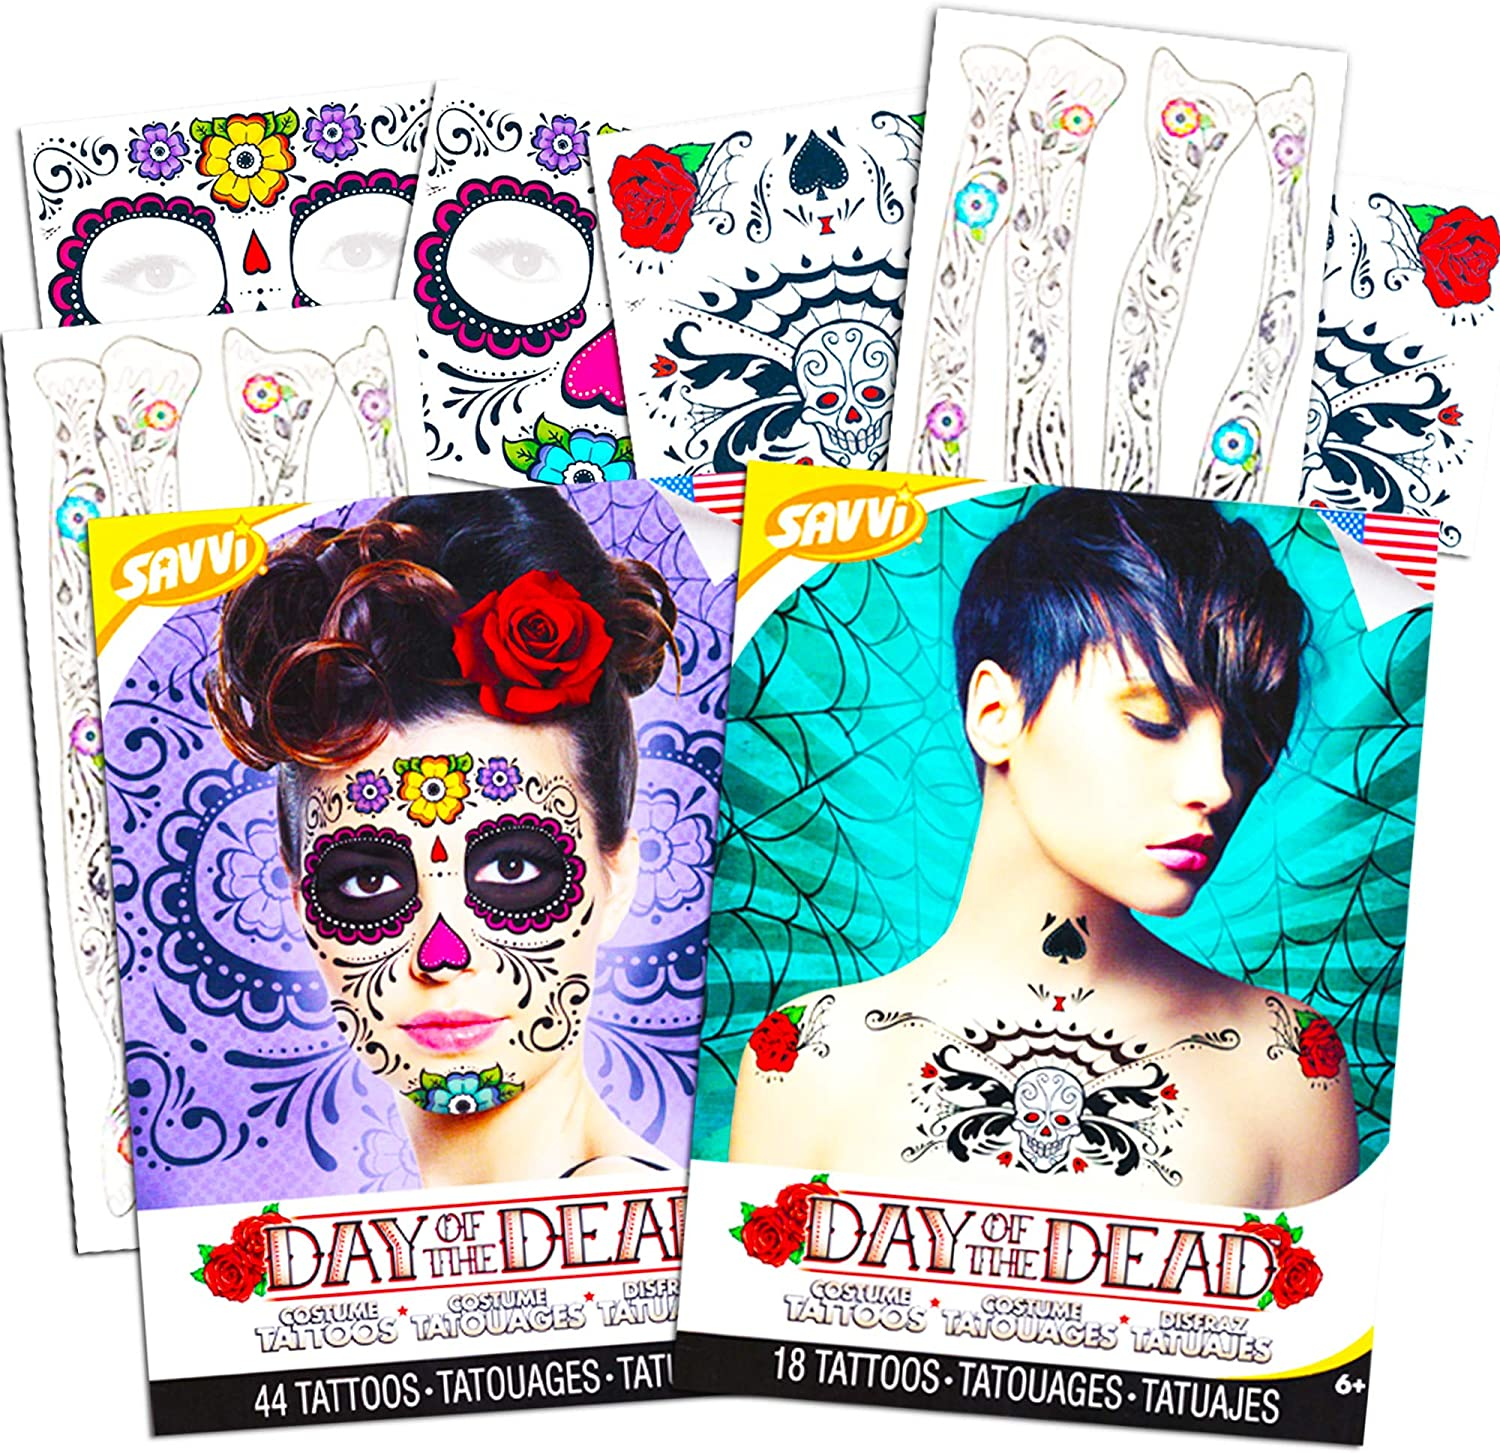 Day of The Dead Sugar Skull Temporary Tattoo Ultimate Whole Body Set - Face, Arms, Hands and Chest Tattoo Kits (Floral Design)